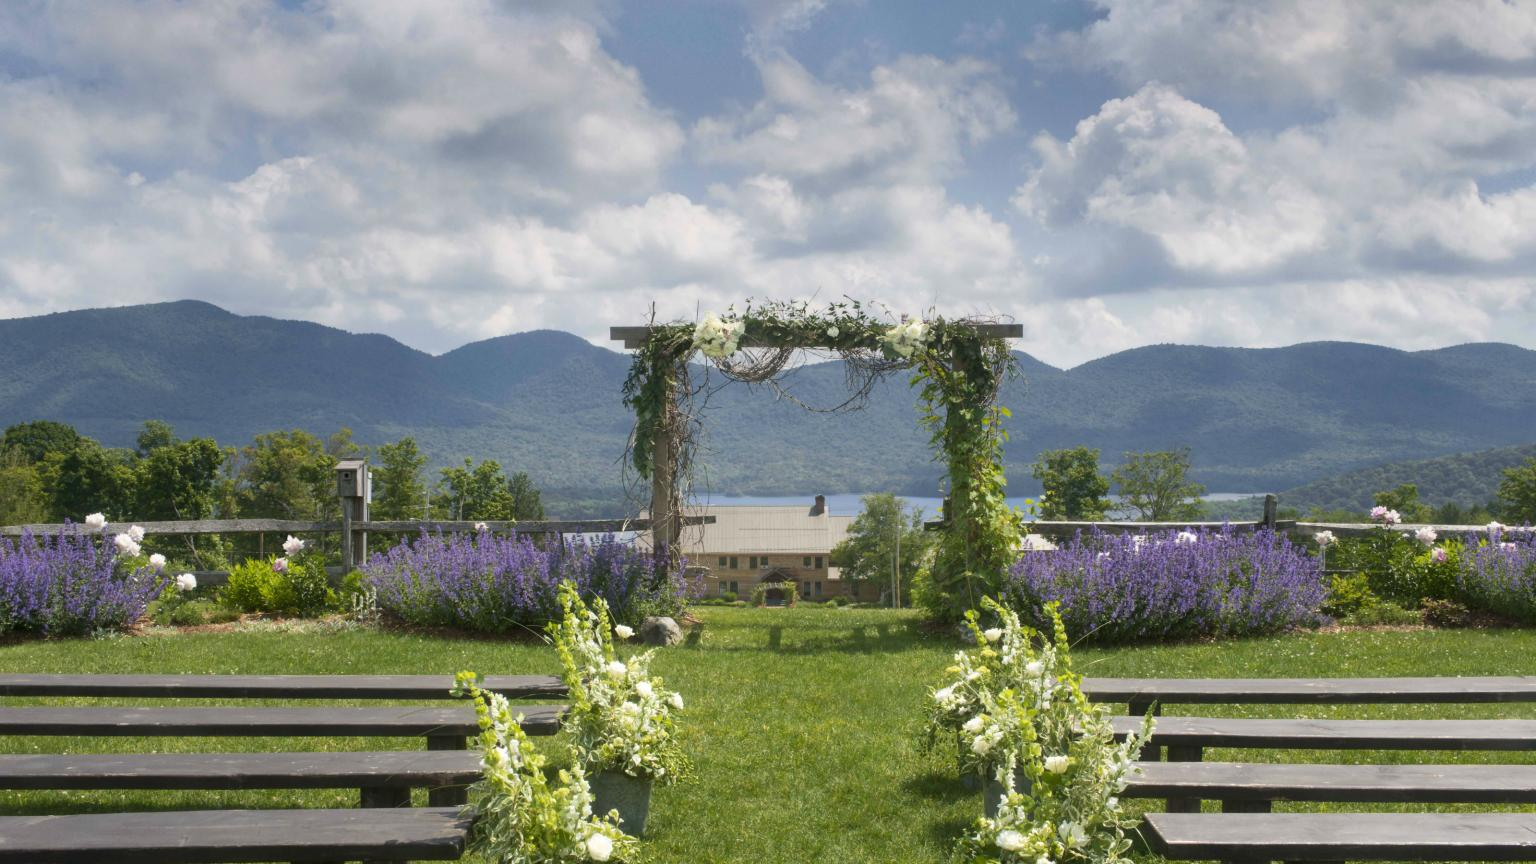 lodging in chittenden, vt | killington vacations + getaways